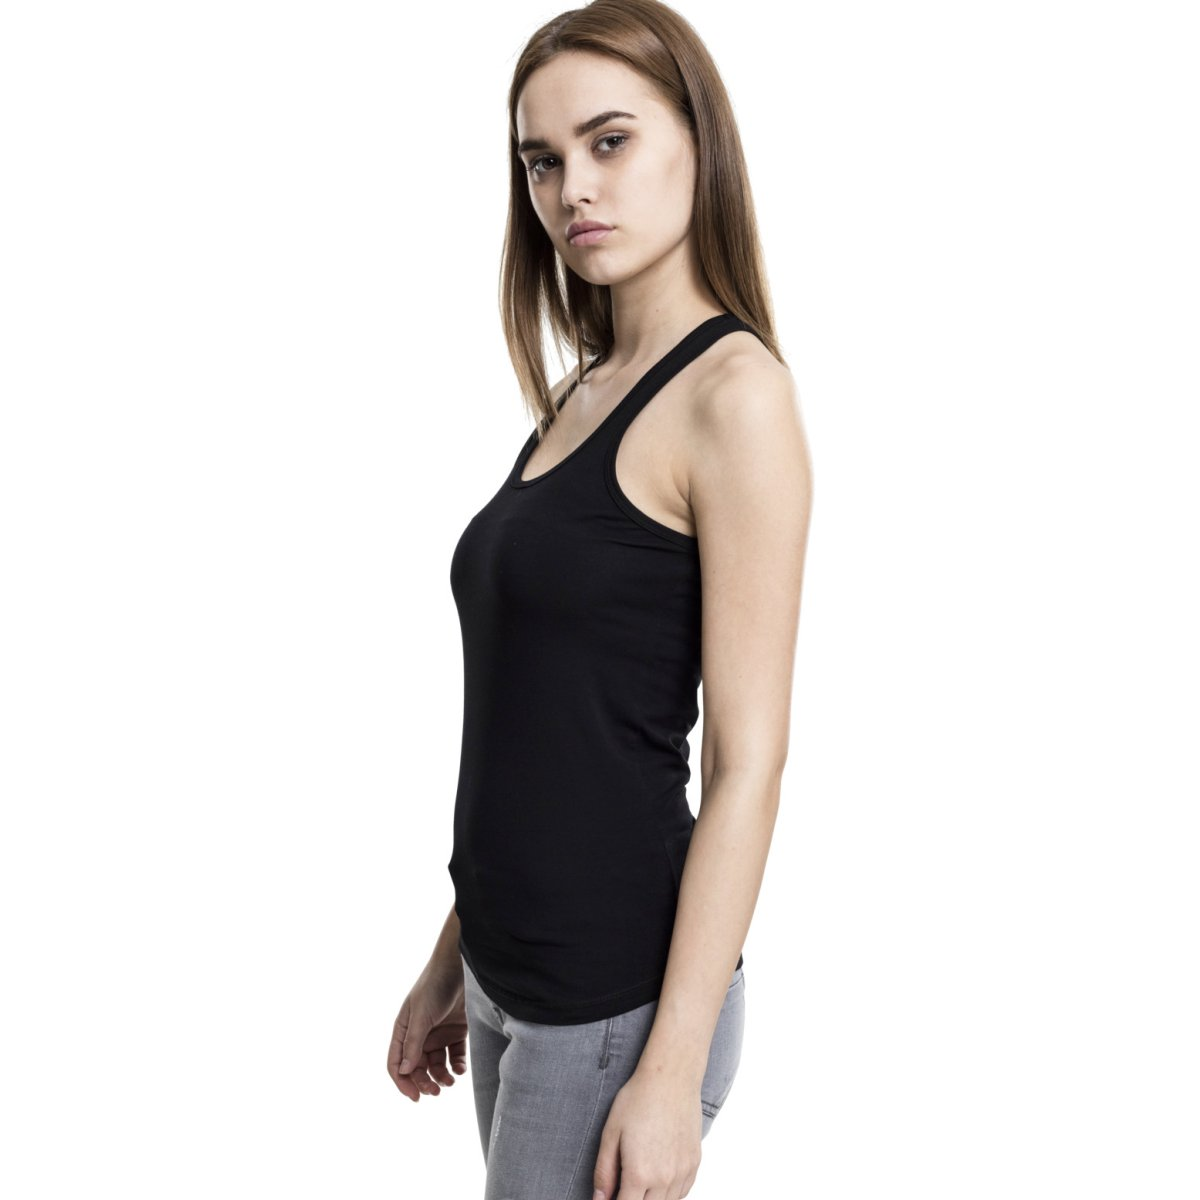 JERSEY Stretch Tank Top Urban Classics Ladies